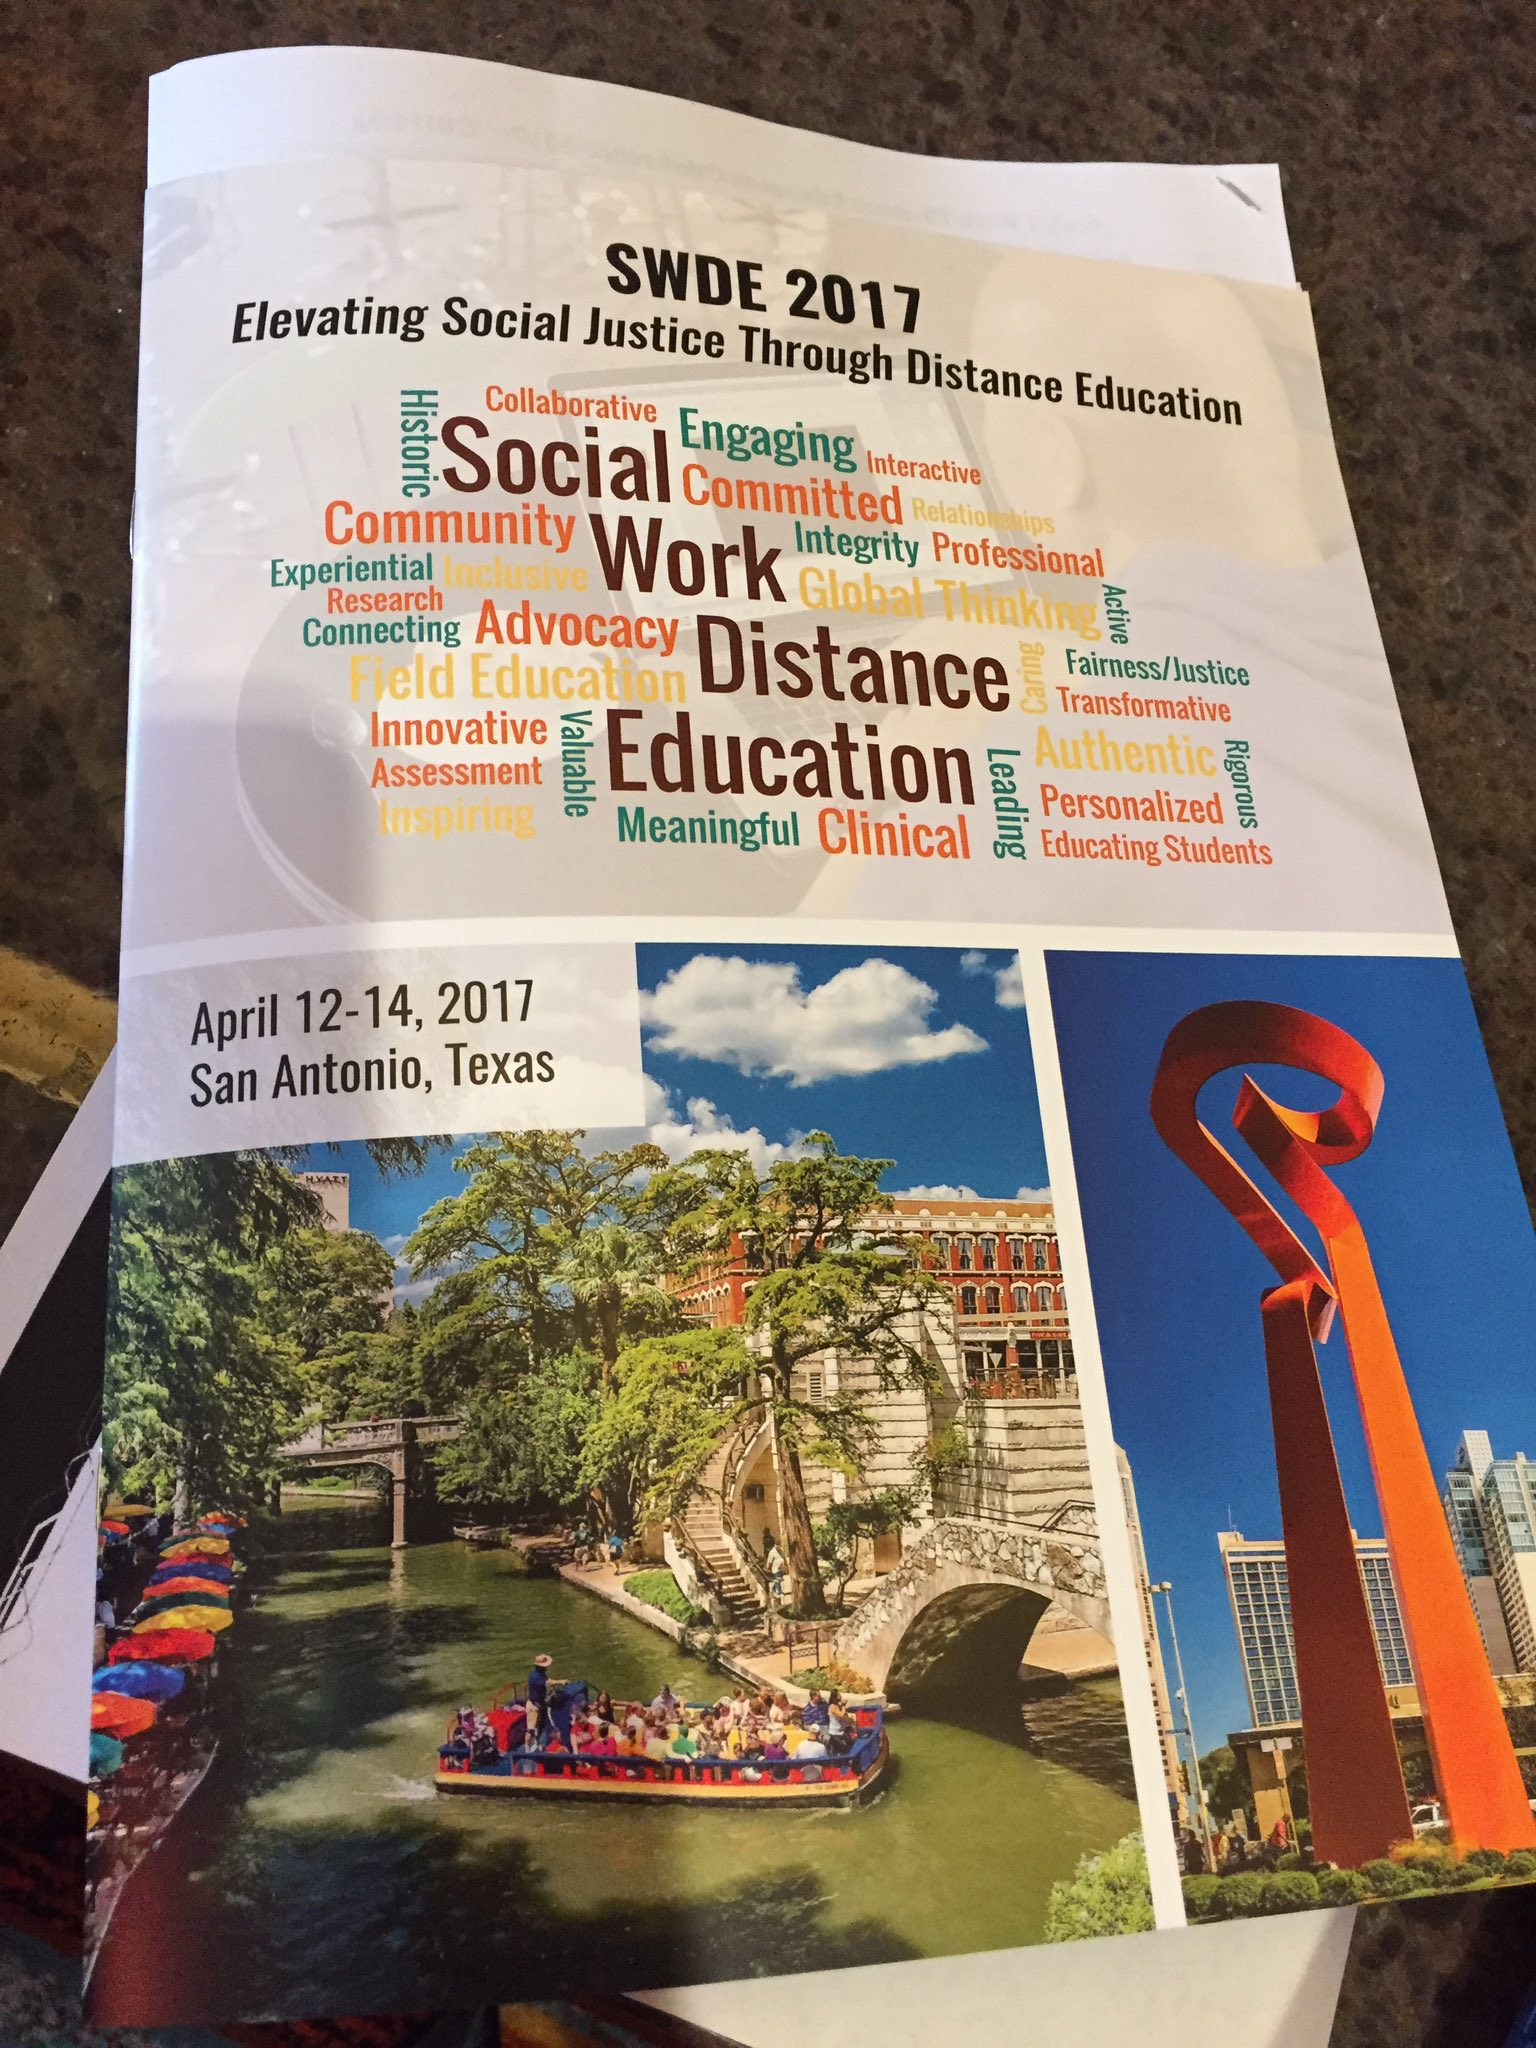 #SWDE2017  All checked in for an exciting 3 days of learning & networking about my 2 favorite topics! https://t.co/c0zjTYmsVG